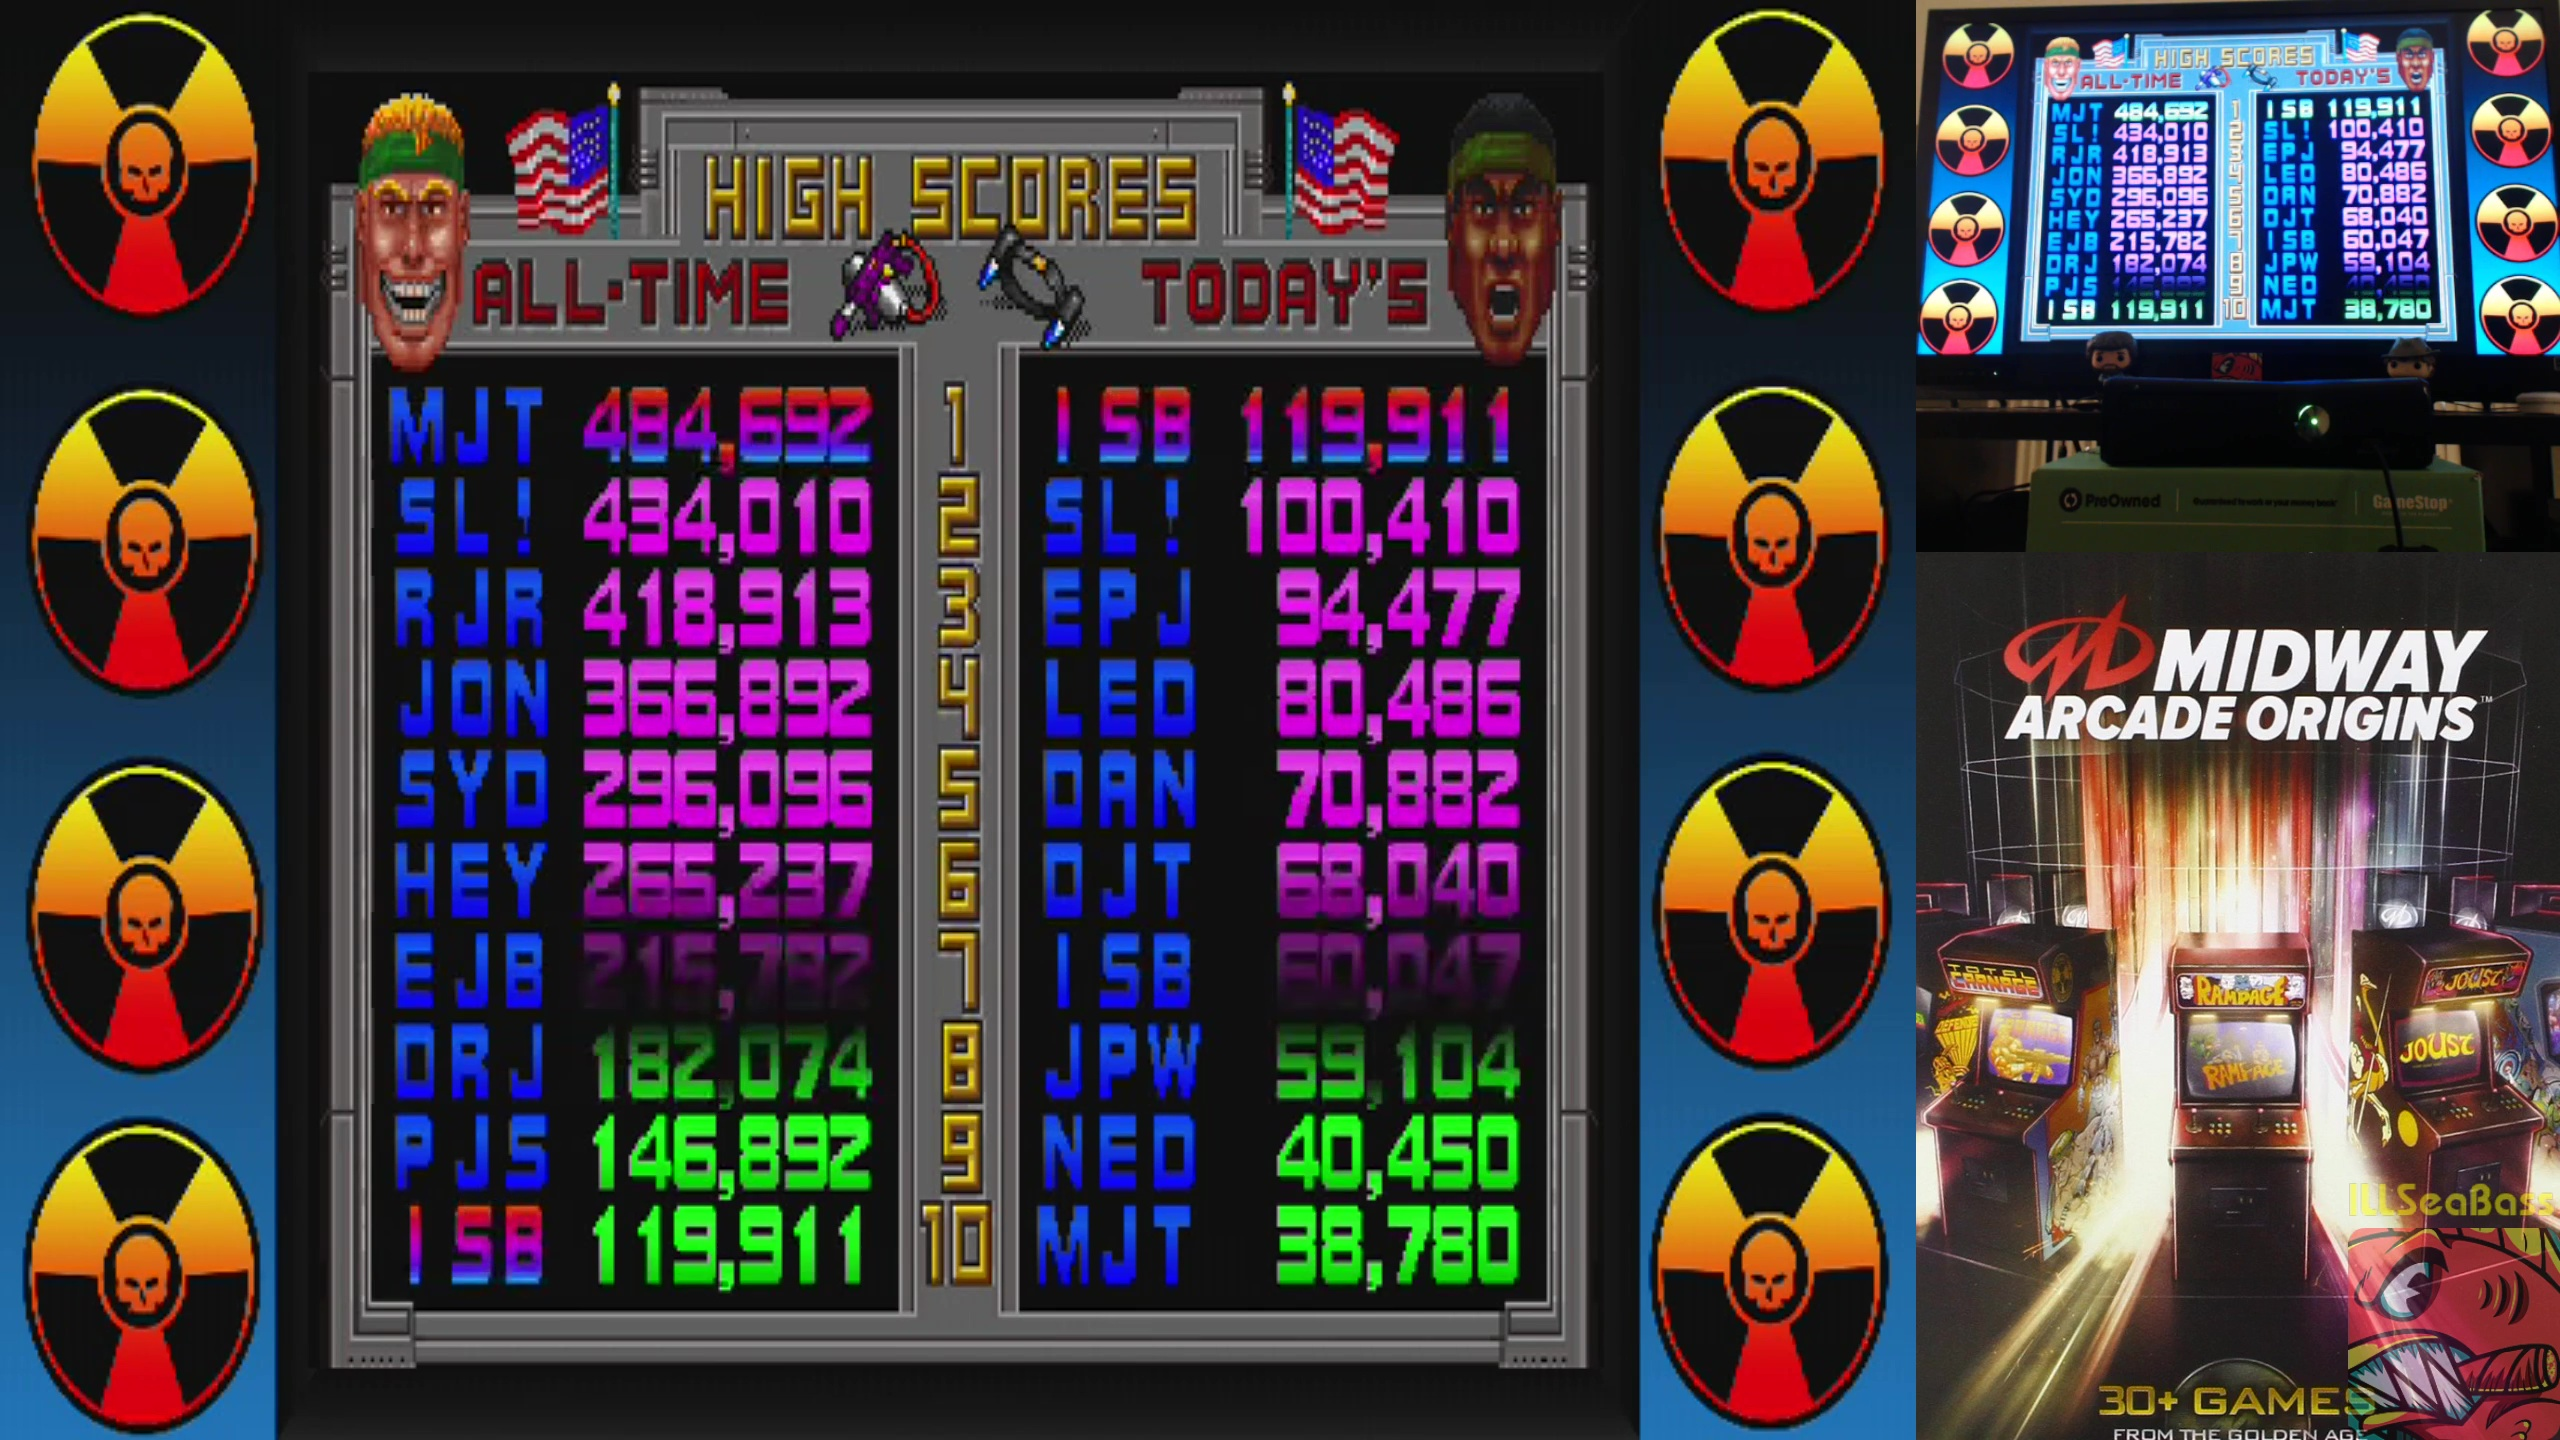 Midway Arcade Origins: Total Carnage 119,911 points